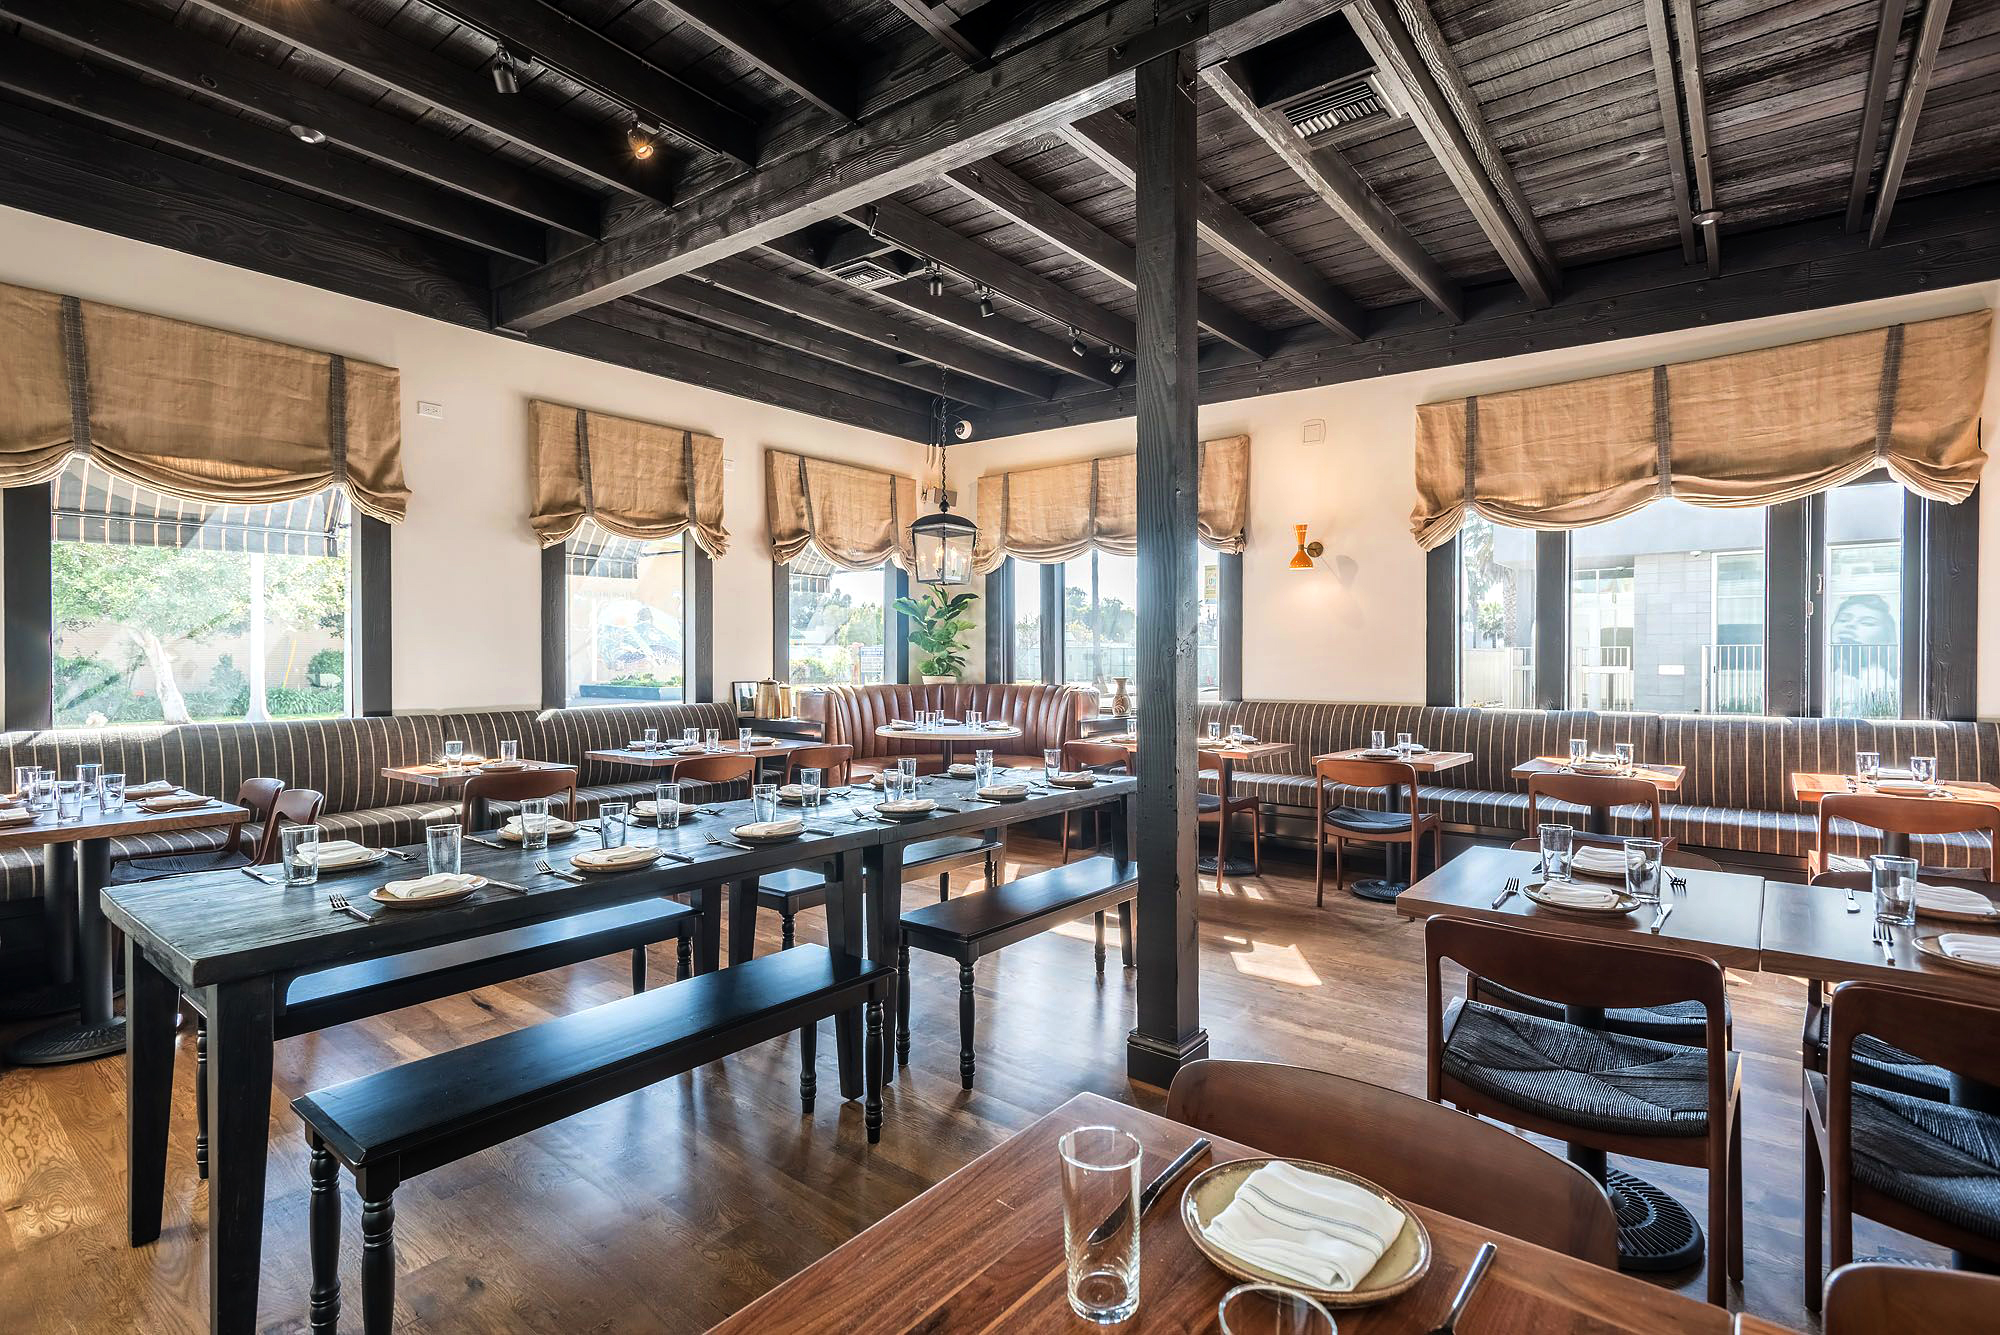 S.E.A.-Studio-Environmental-Architecture-David-Hertz-FAIA-Abbot-Kinney-Restaurant-Venice-Beach-adaptive-reuse-sustainable-regenerative-restorative-design-pedestrian-walkable-urbanism-local-community-context-modern-destination-cuisine-remodel-interior.jpg